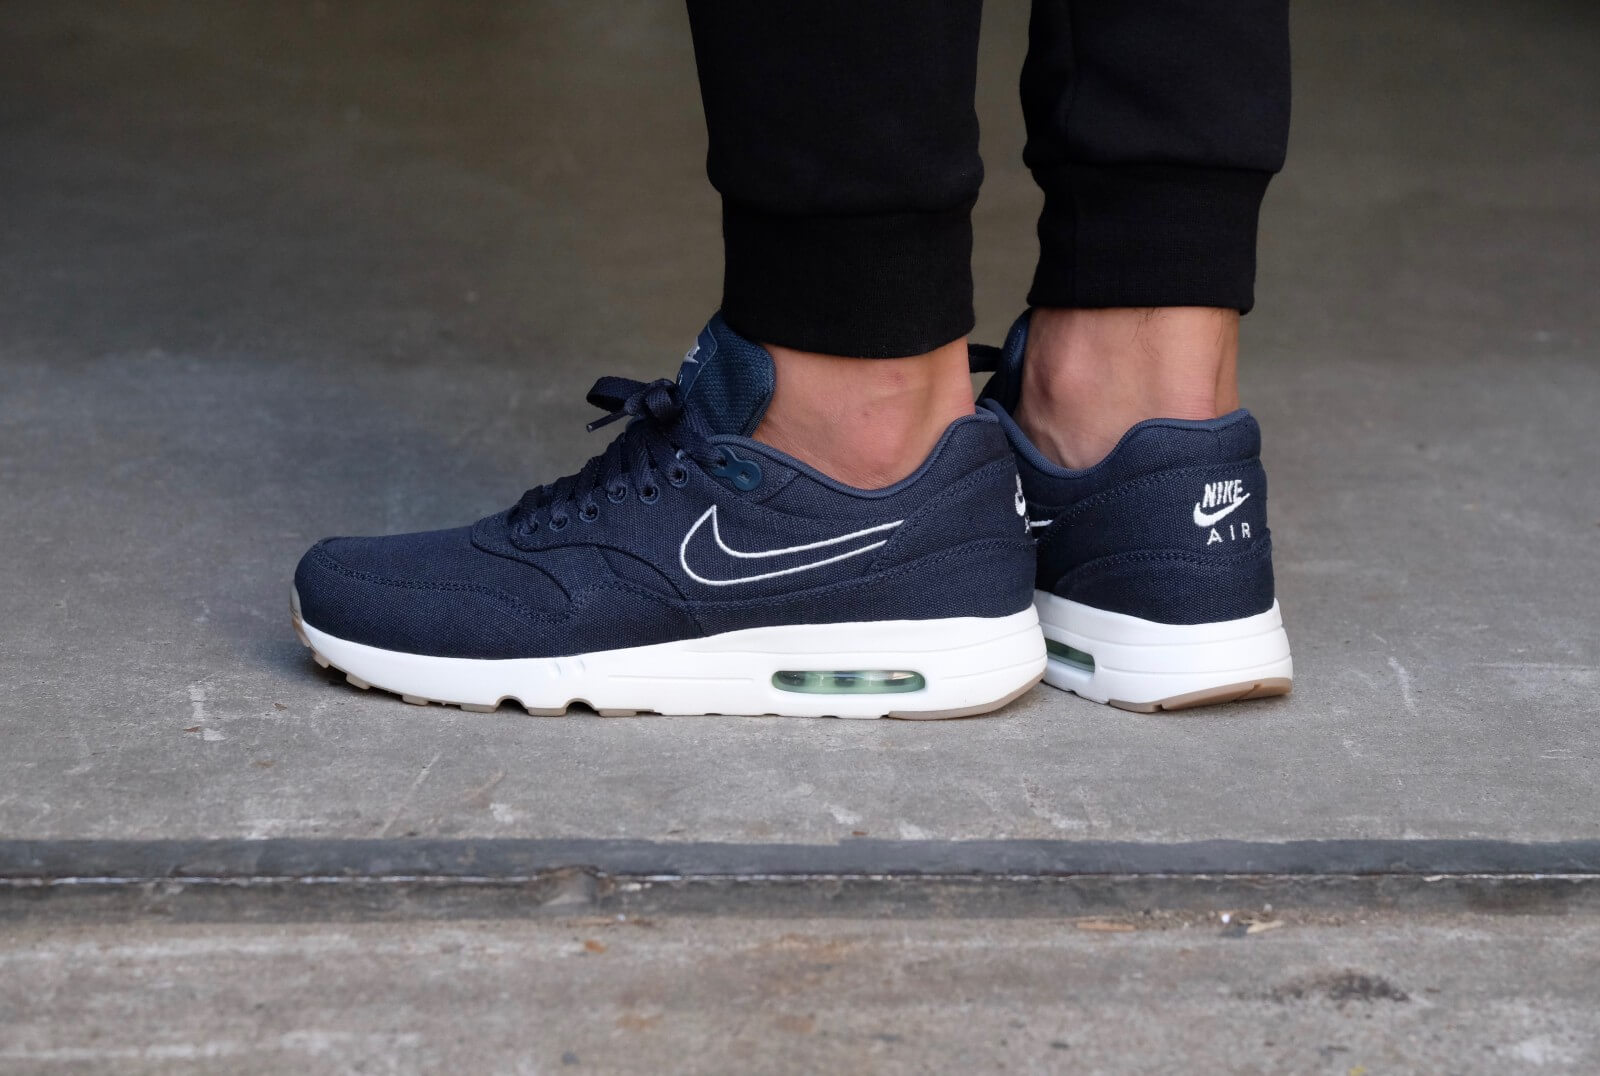 Nike Air Max 1 Ultra 2.0 Textile Armory NavyArmory Navy Sail Fresh Mint 898009 400